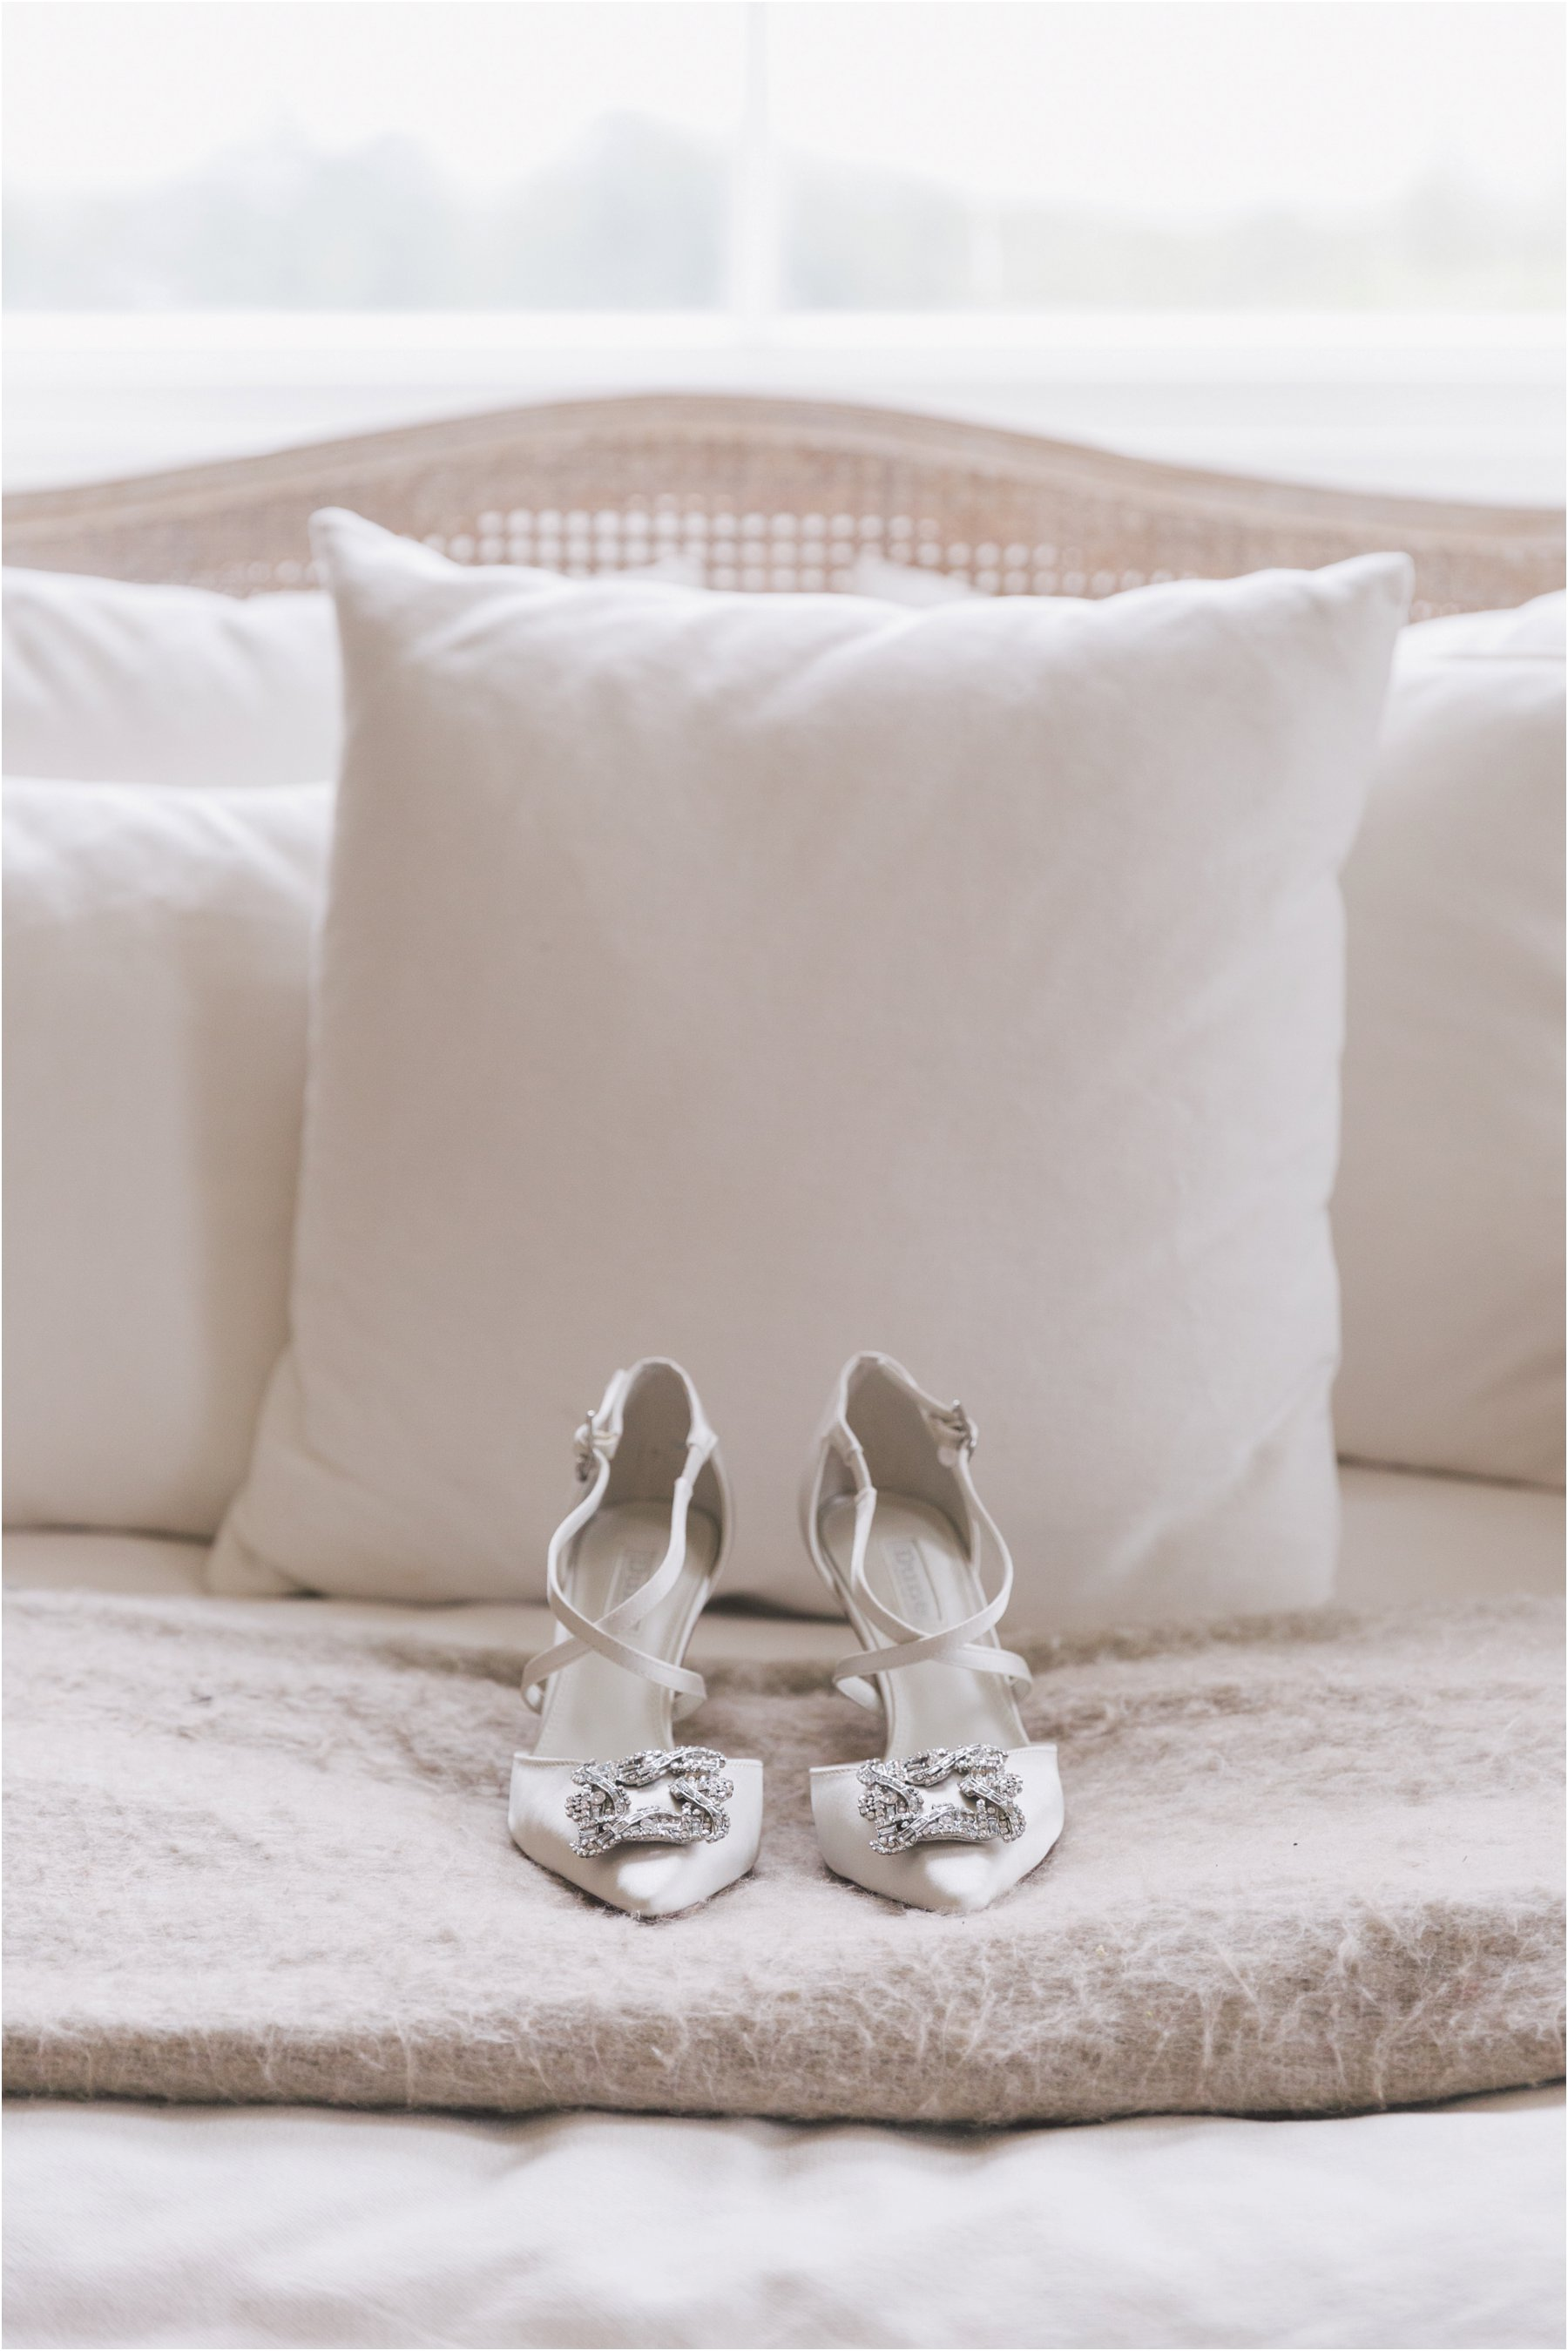 eve.photography.relaxed.creative.wedding.destination._0430.jpg